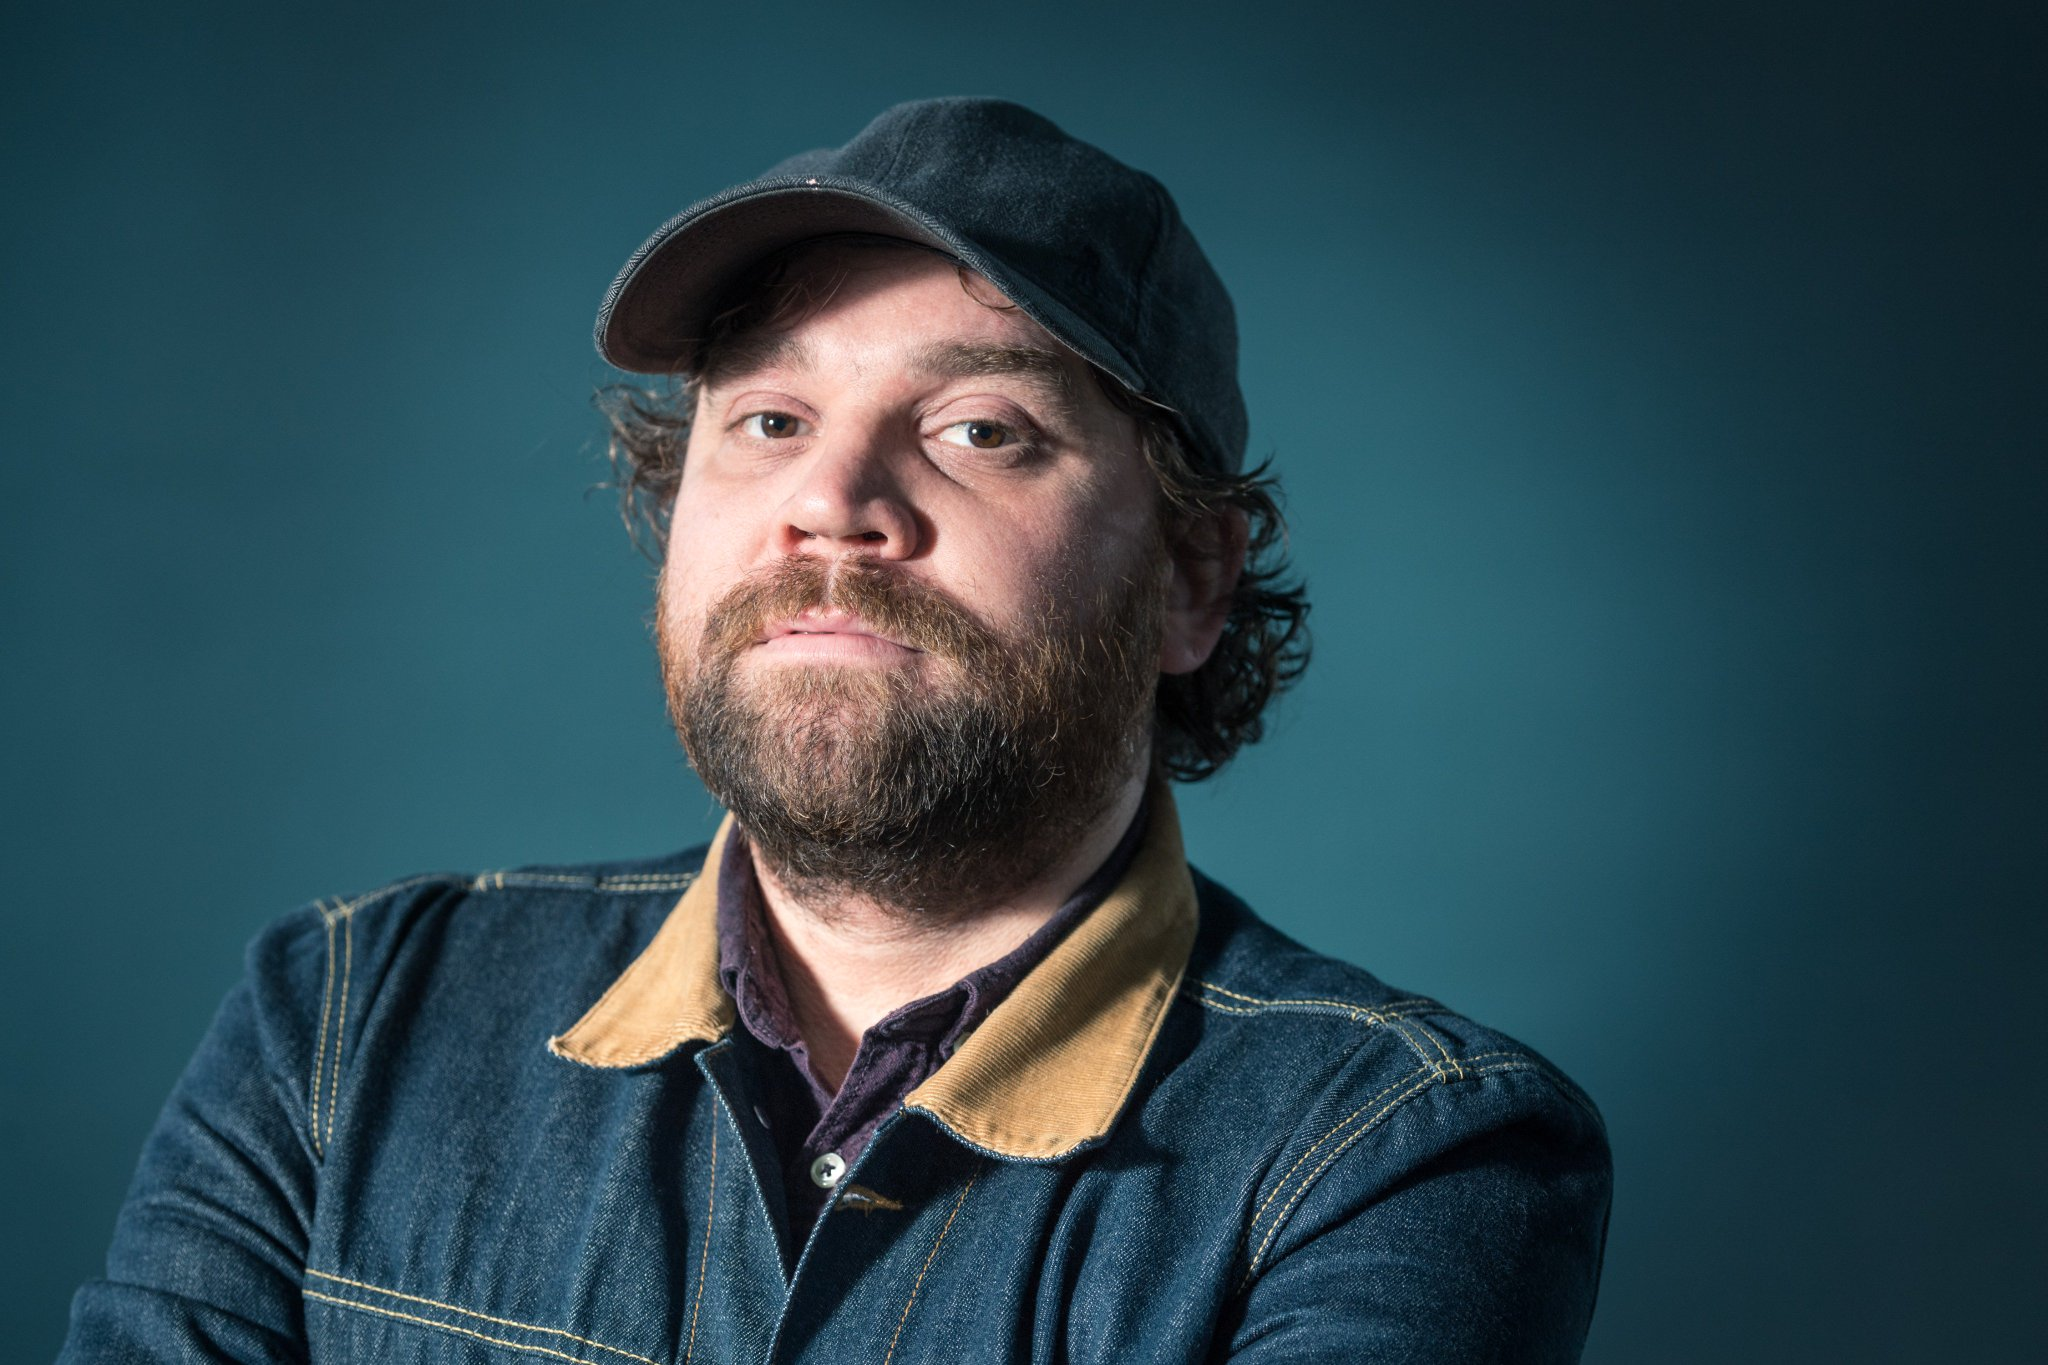 Remembering my friend Scott Hutchison of Frightened Rabbit https://t.co/TnUec8szlb https://t.co/6W6QST3Dq2